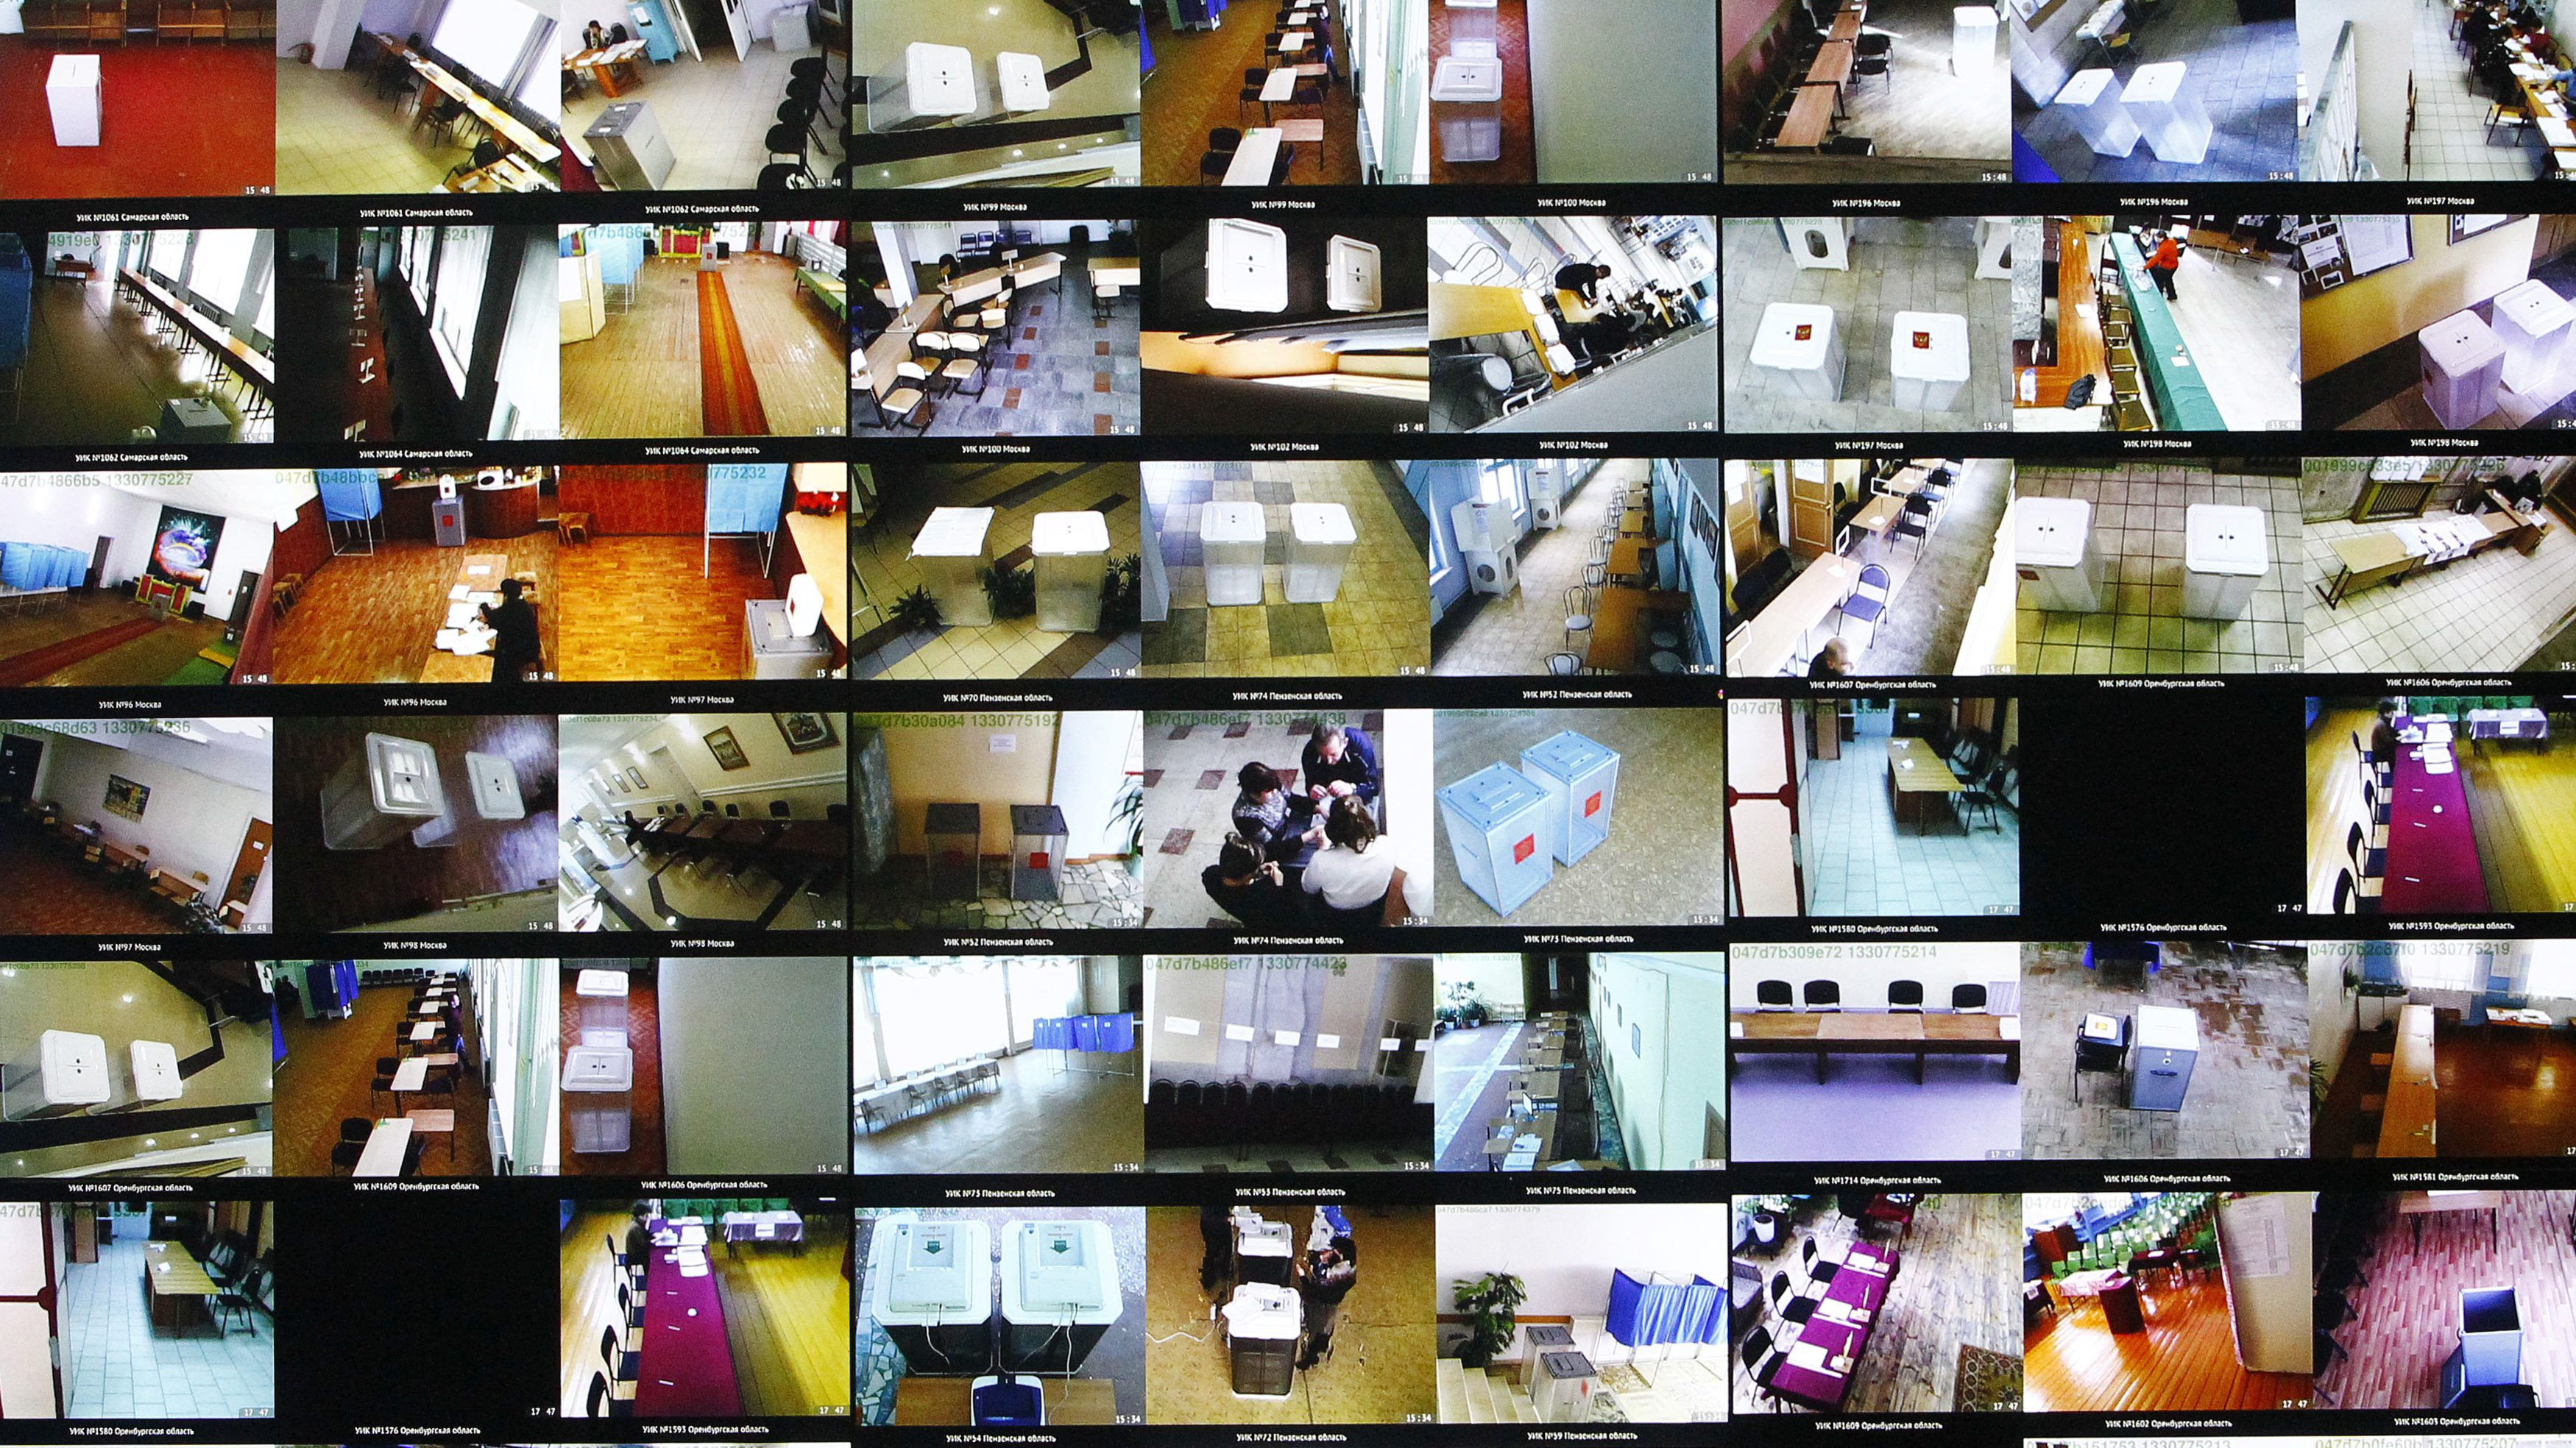 Screens showing live broadcast from polling stations via a network of webcams installed all over the country are seen during a presentation ceremony at the headquarters of the Chamber of Commerce and Industry of the Russian Federation in Moscow March 3, 2012. Russians will go to the polls for their presidential election on Sunday.